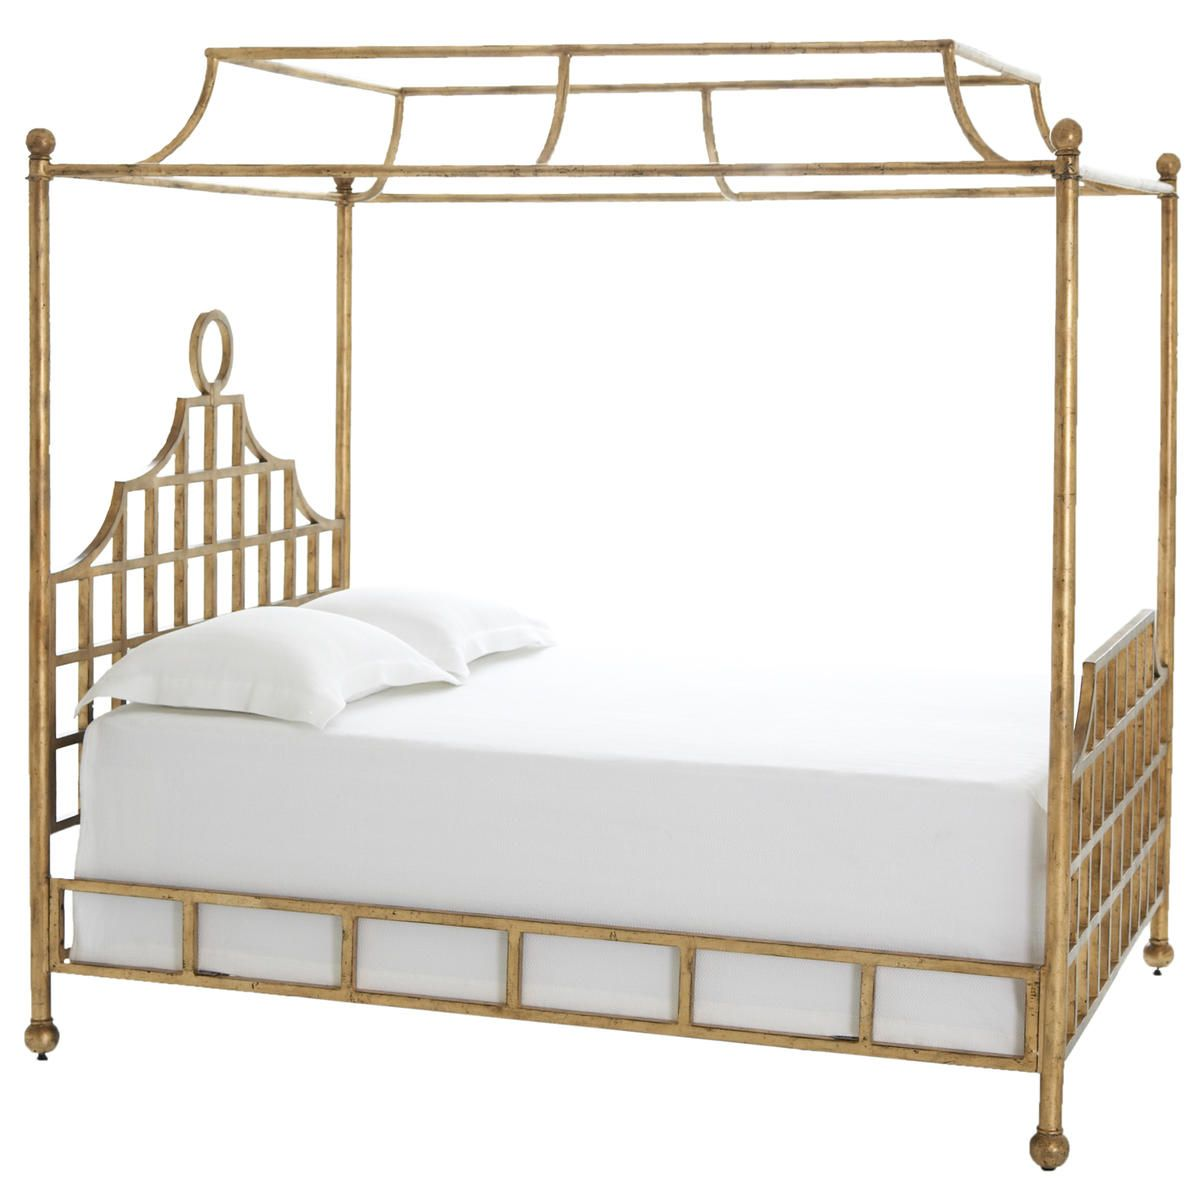 Pine Cone Hill | Atlas Canopy Metal Bed - Gold Finish | These metal bed frames  sc 1 st  Pinterest & Pine Cone Hill | Atlas Canopy Metal Bed - Gold Finish | These ...